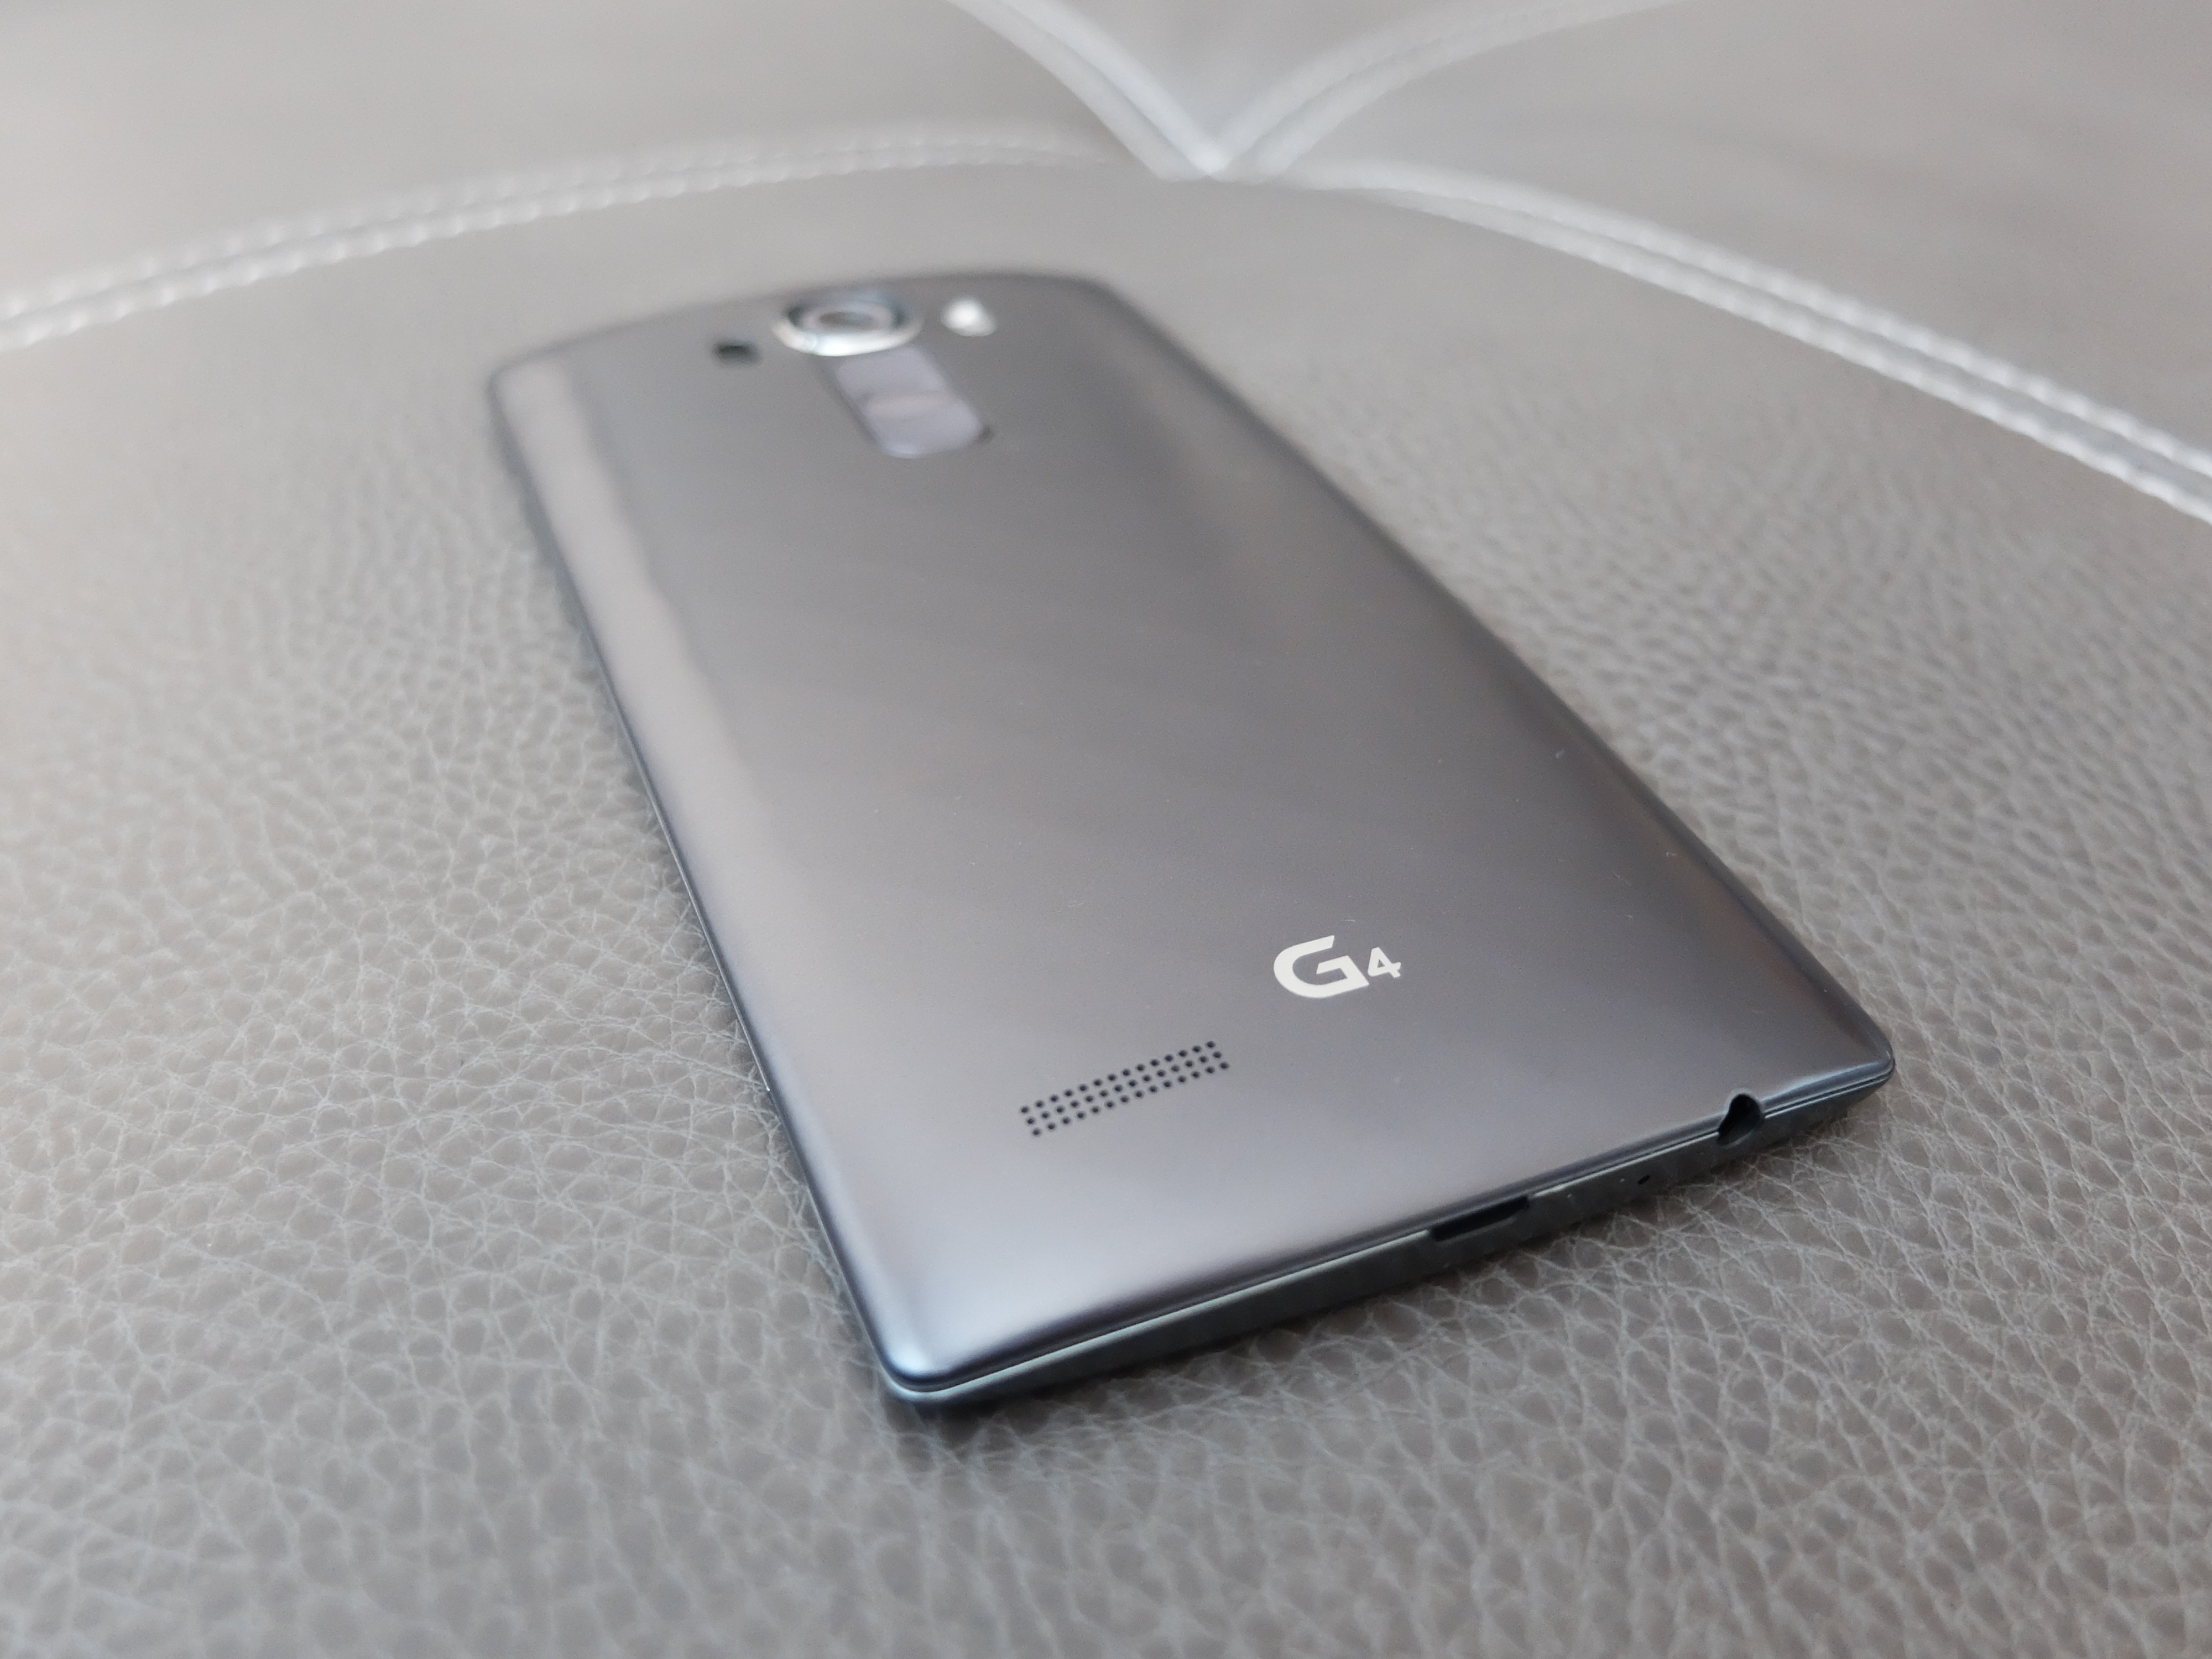 Hands-On With the G4, the New Flagship Smartphone From LG :: Tech ...